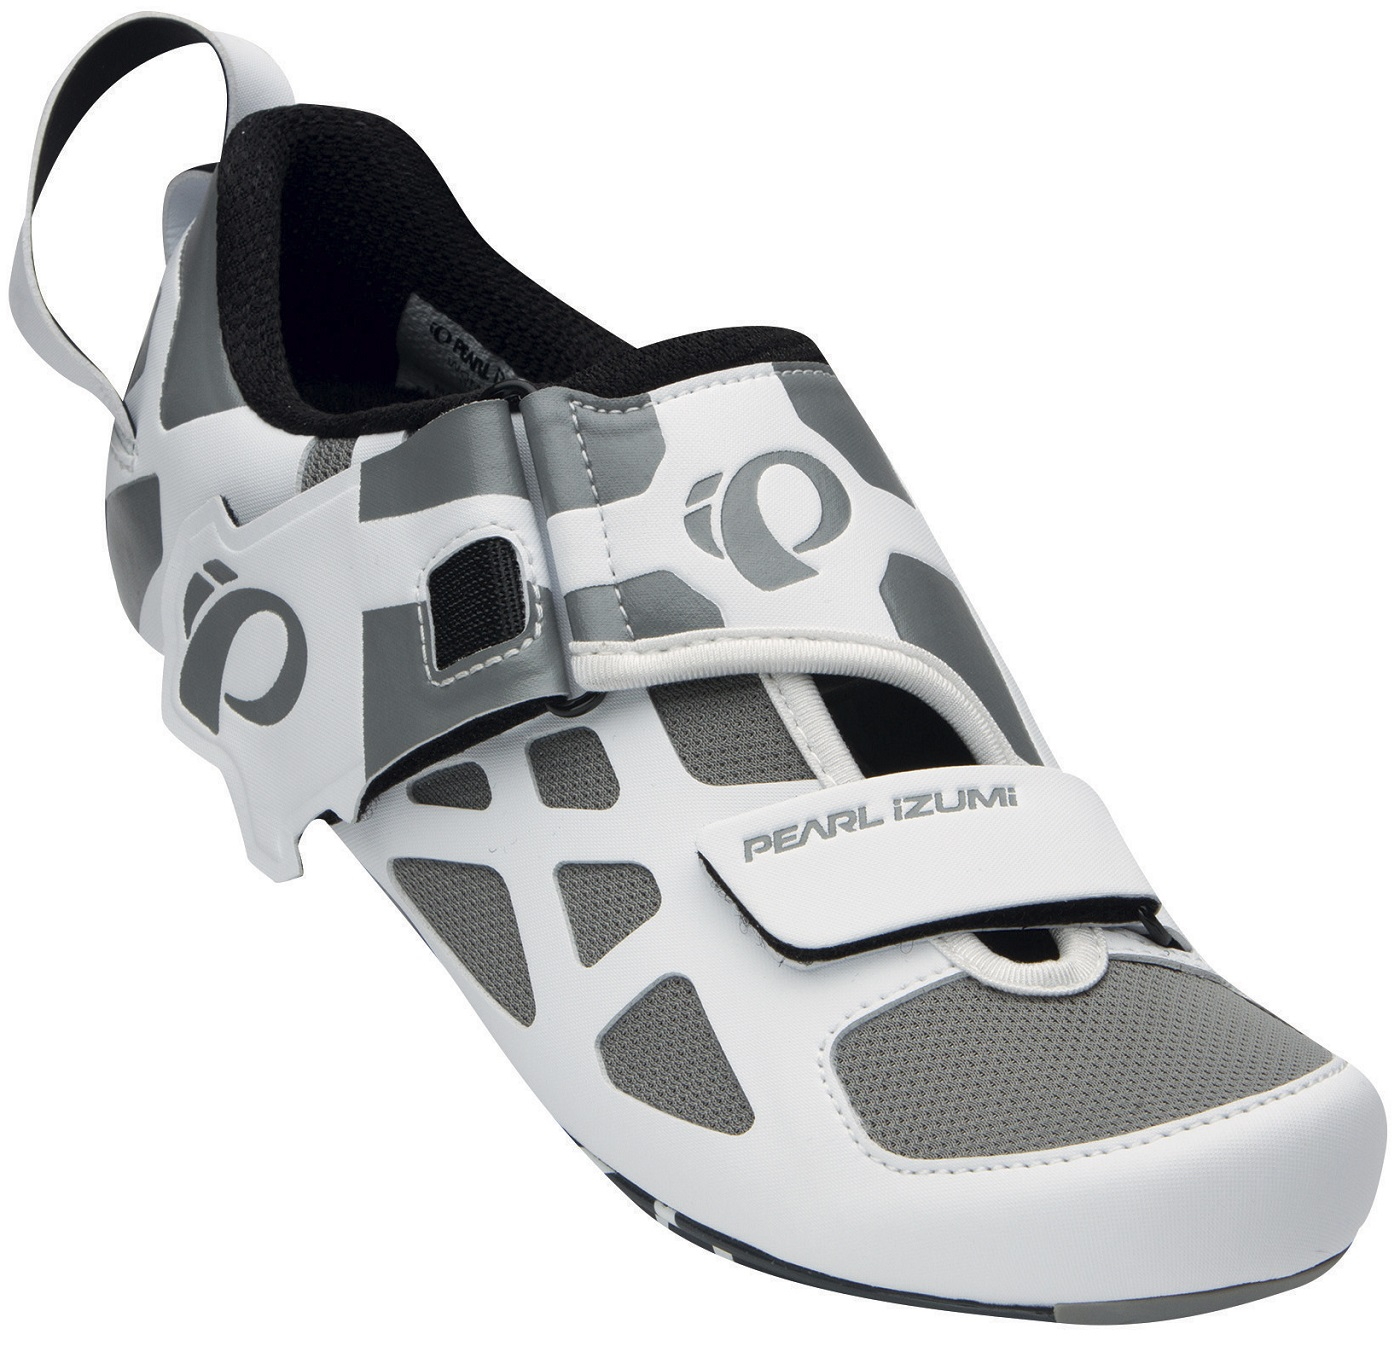 Pearl Izumi Women S Tri Fly V Carbon Cycling Shoes